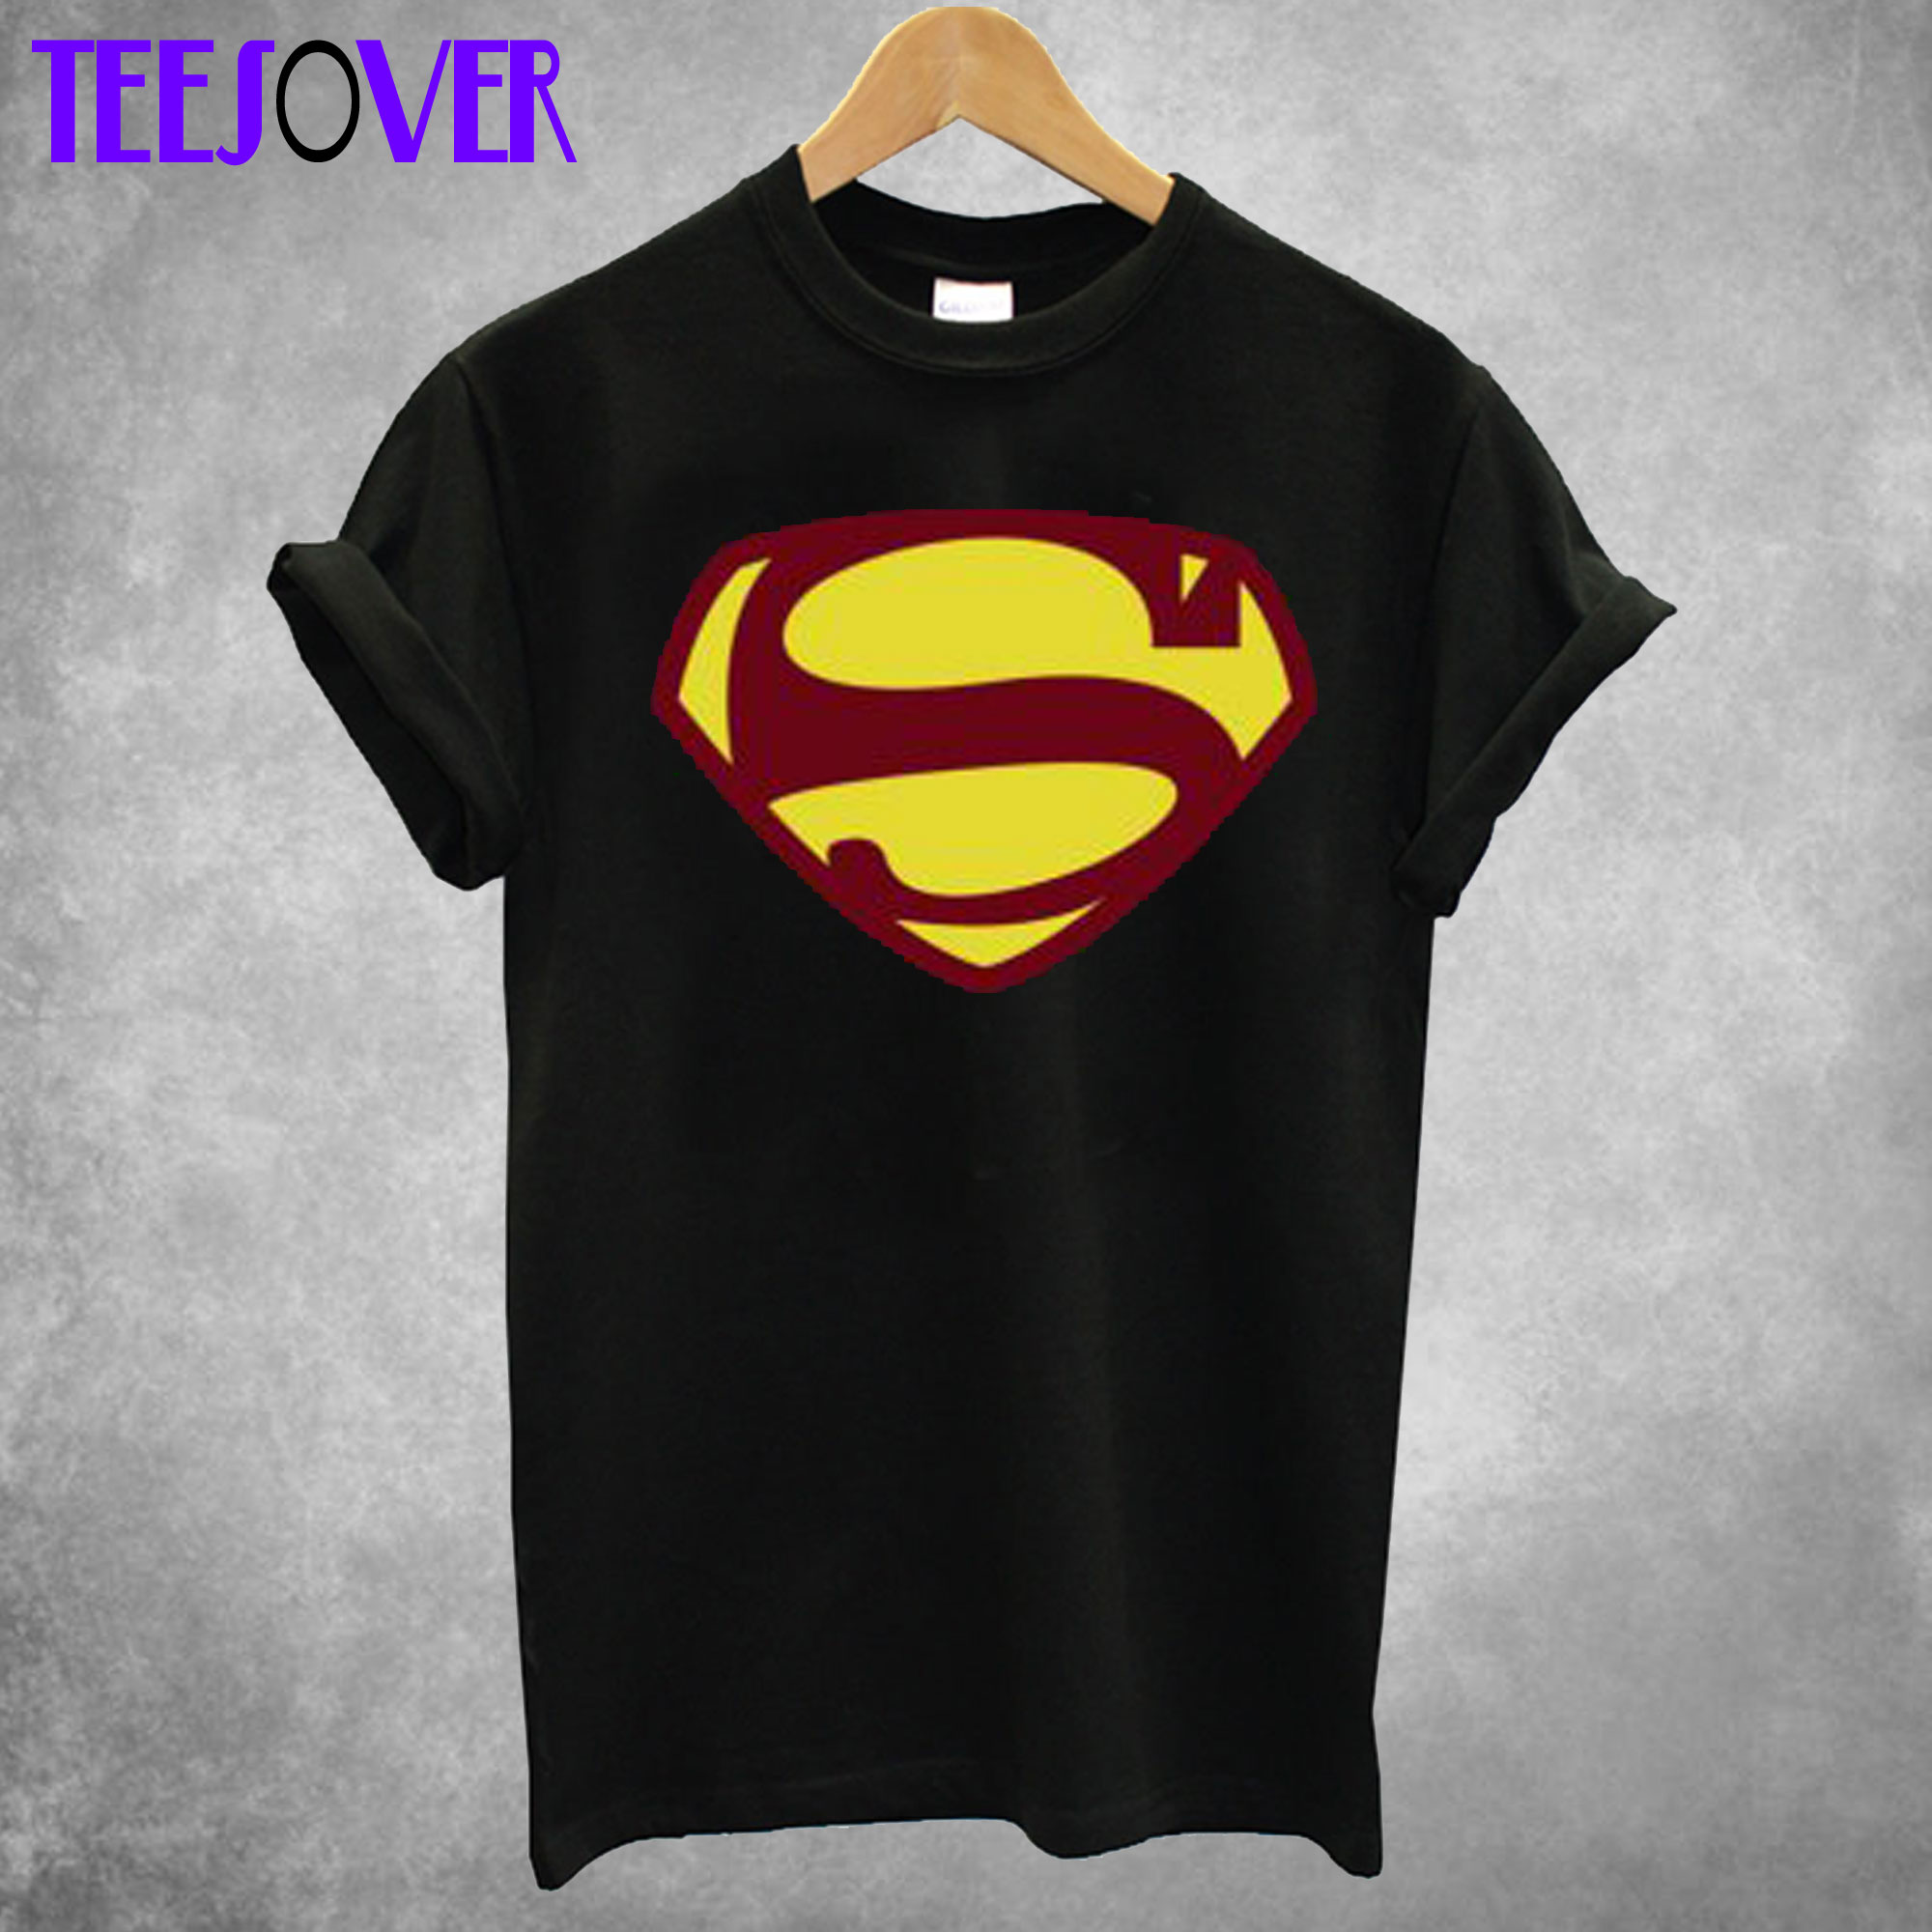 (S) George Reeves SUPERMAN T-Shirt